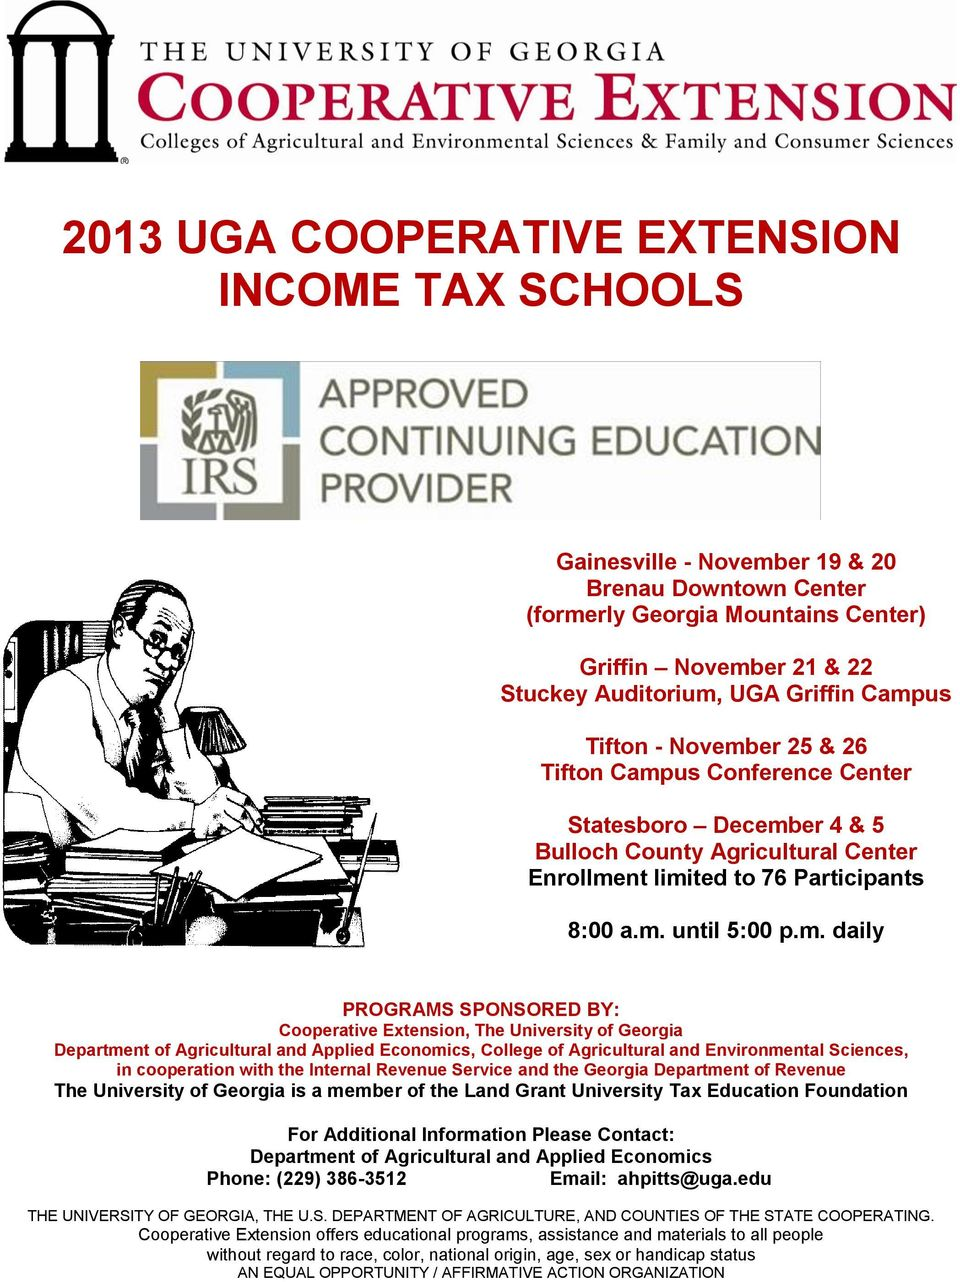 PROGRAMS SPONSORED BY: Cooperative Extension, The University of Georgia Department of Agricultural and Applied Economics, College of Agricultural and Environmental Sciences, in cooperation with the